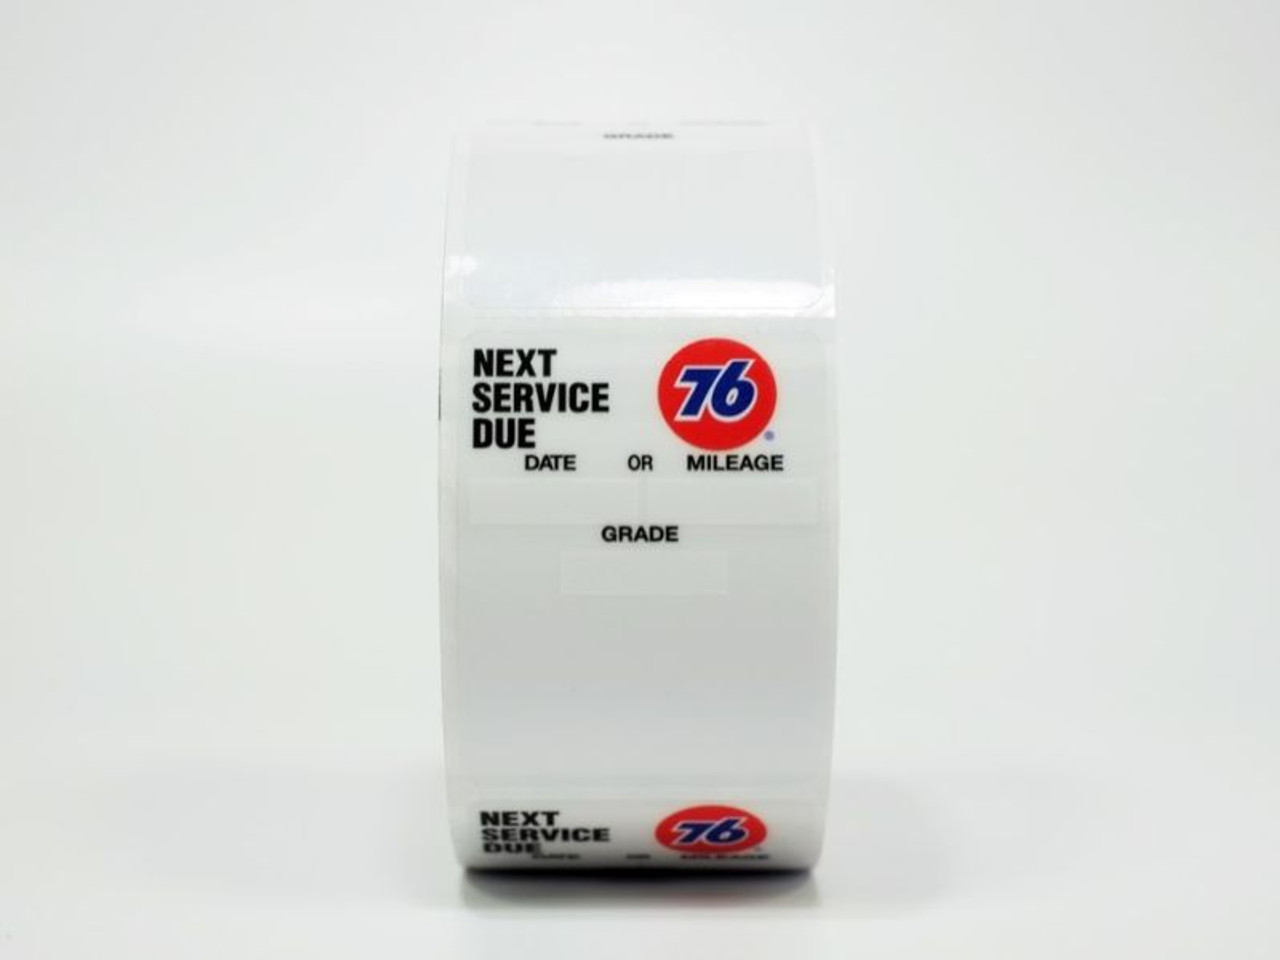 76 Oil Change Sticker - clear static cling